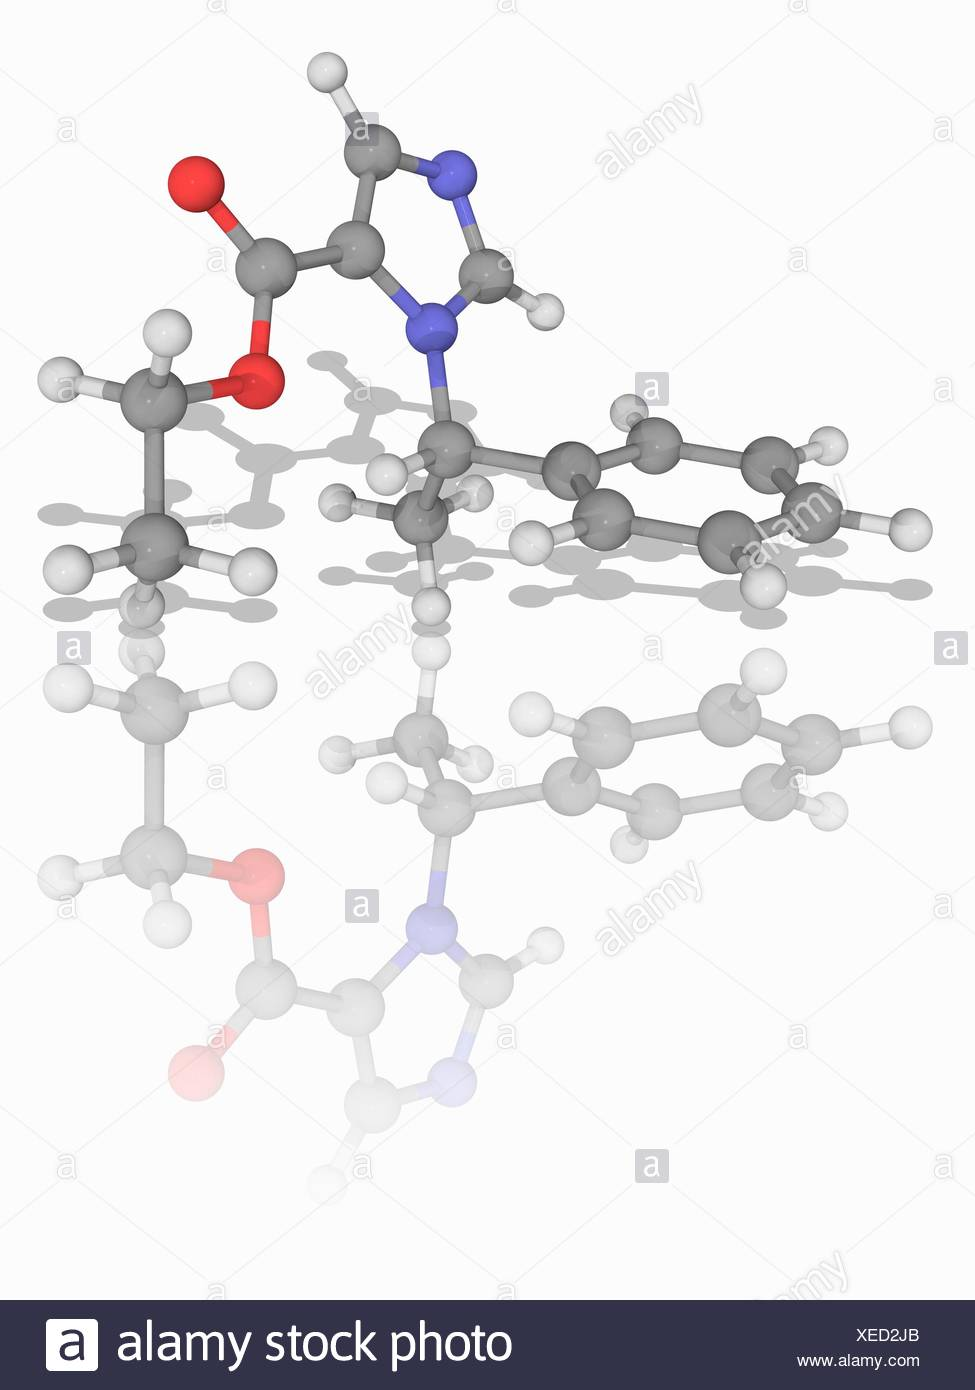 Etomidate. Molecular model of the drug etomidate (C14.H16.N2.O2), used as a short-acting intravenous anaesthetic agent for general anaesthesia and for sedation. Atoms are represented as spheres and are colour-coded: carbon (grey), hydrogen (white), nitrogen (blue) and oxygen (red). Illustration. - Stock Image